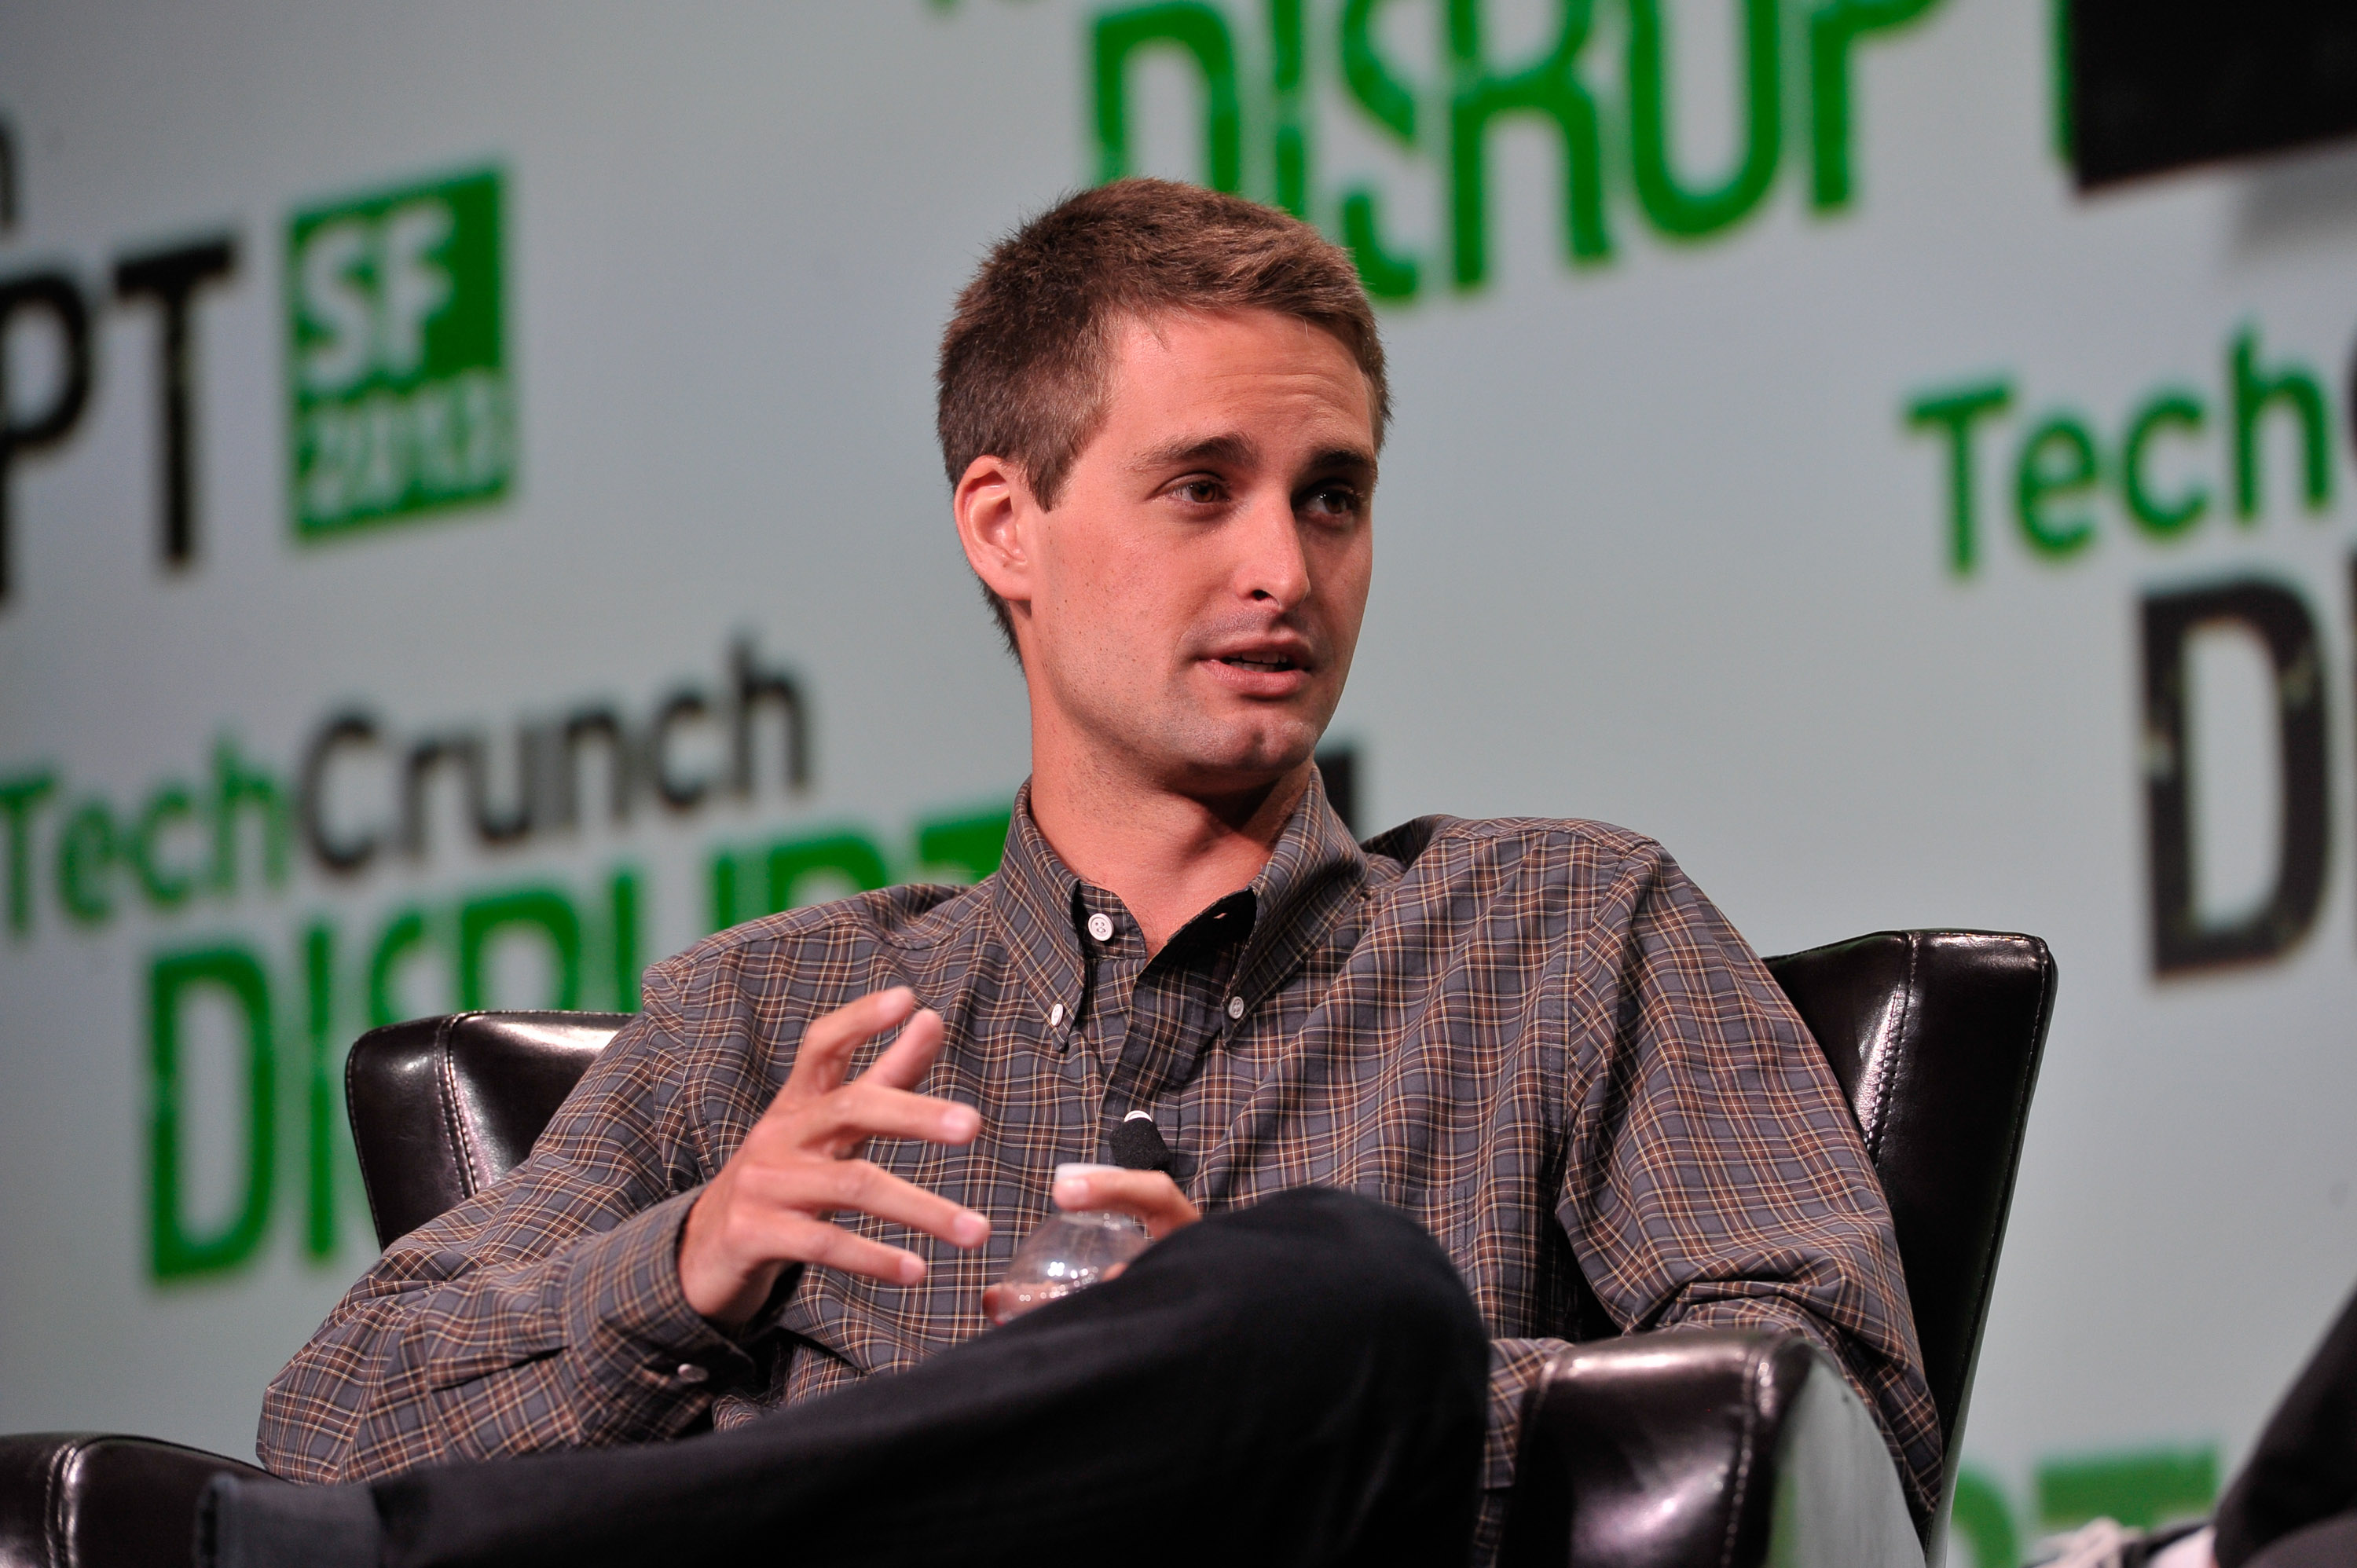 BuzzFeed and Snapchat CEOs announce plans for IPOs